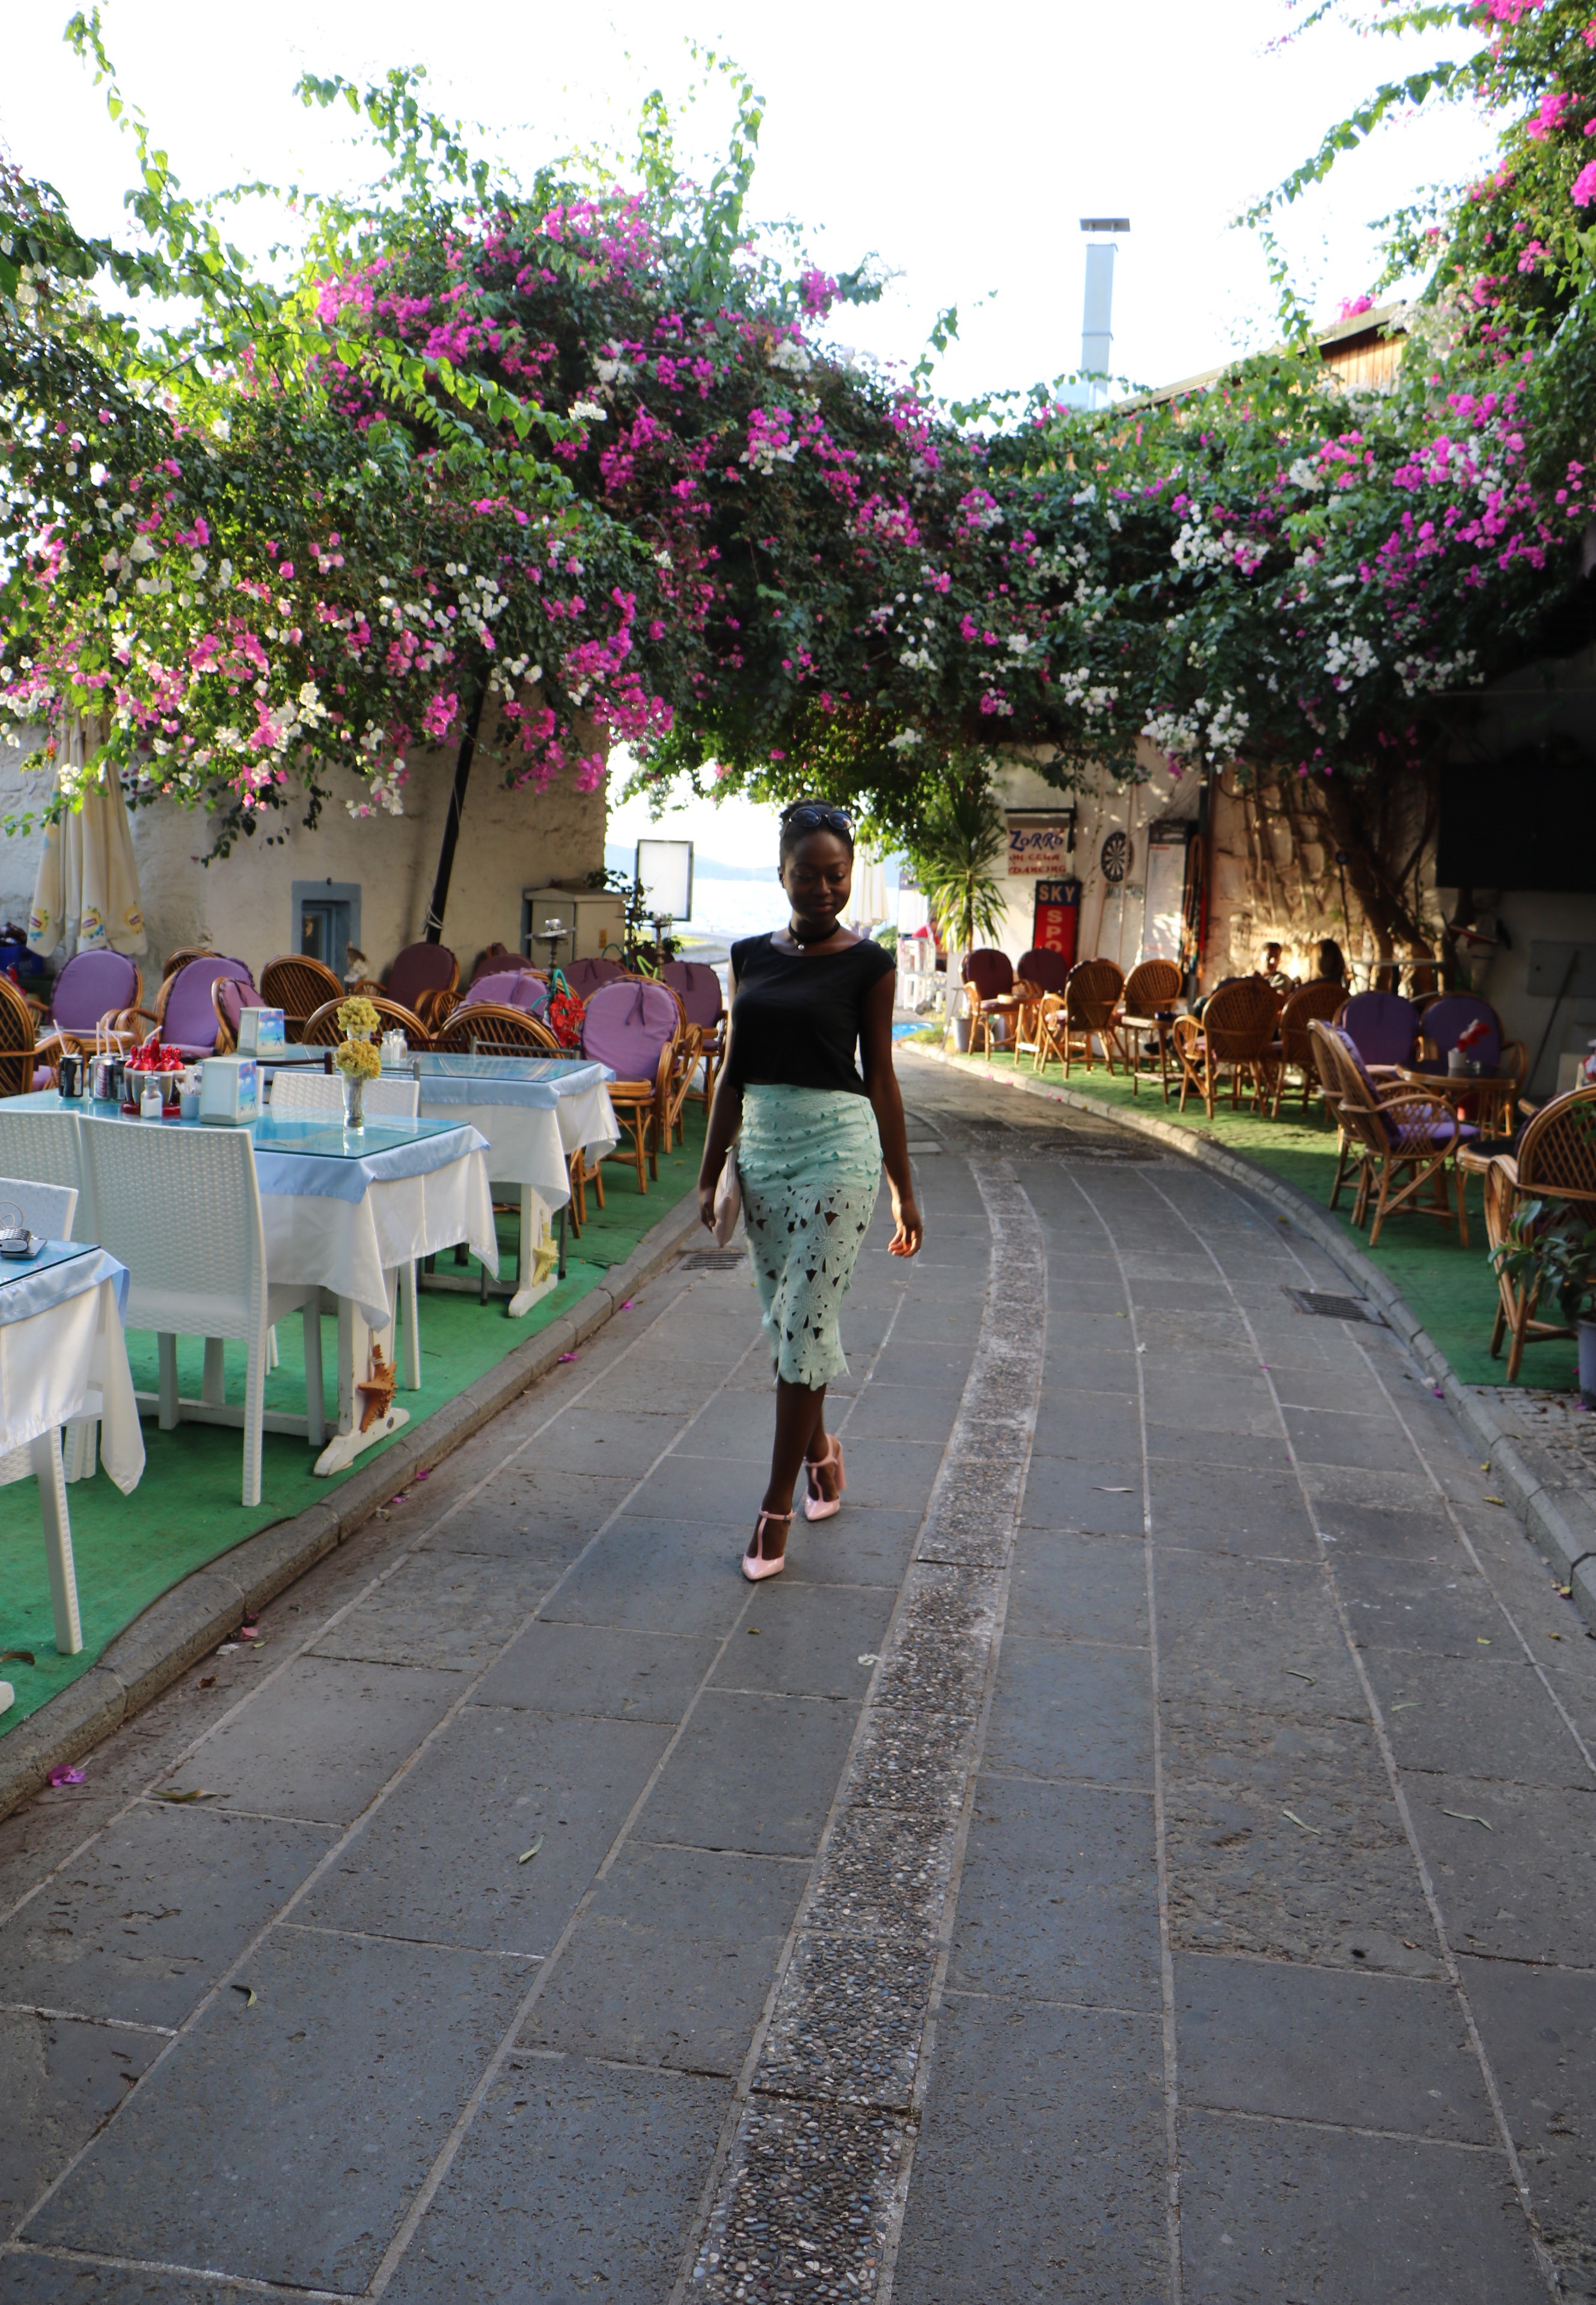 sgturningpoint_blog-trip_to_bodrum-stephanie_guillaume_turkey_bourganvilla-bougainvillea_turquie